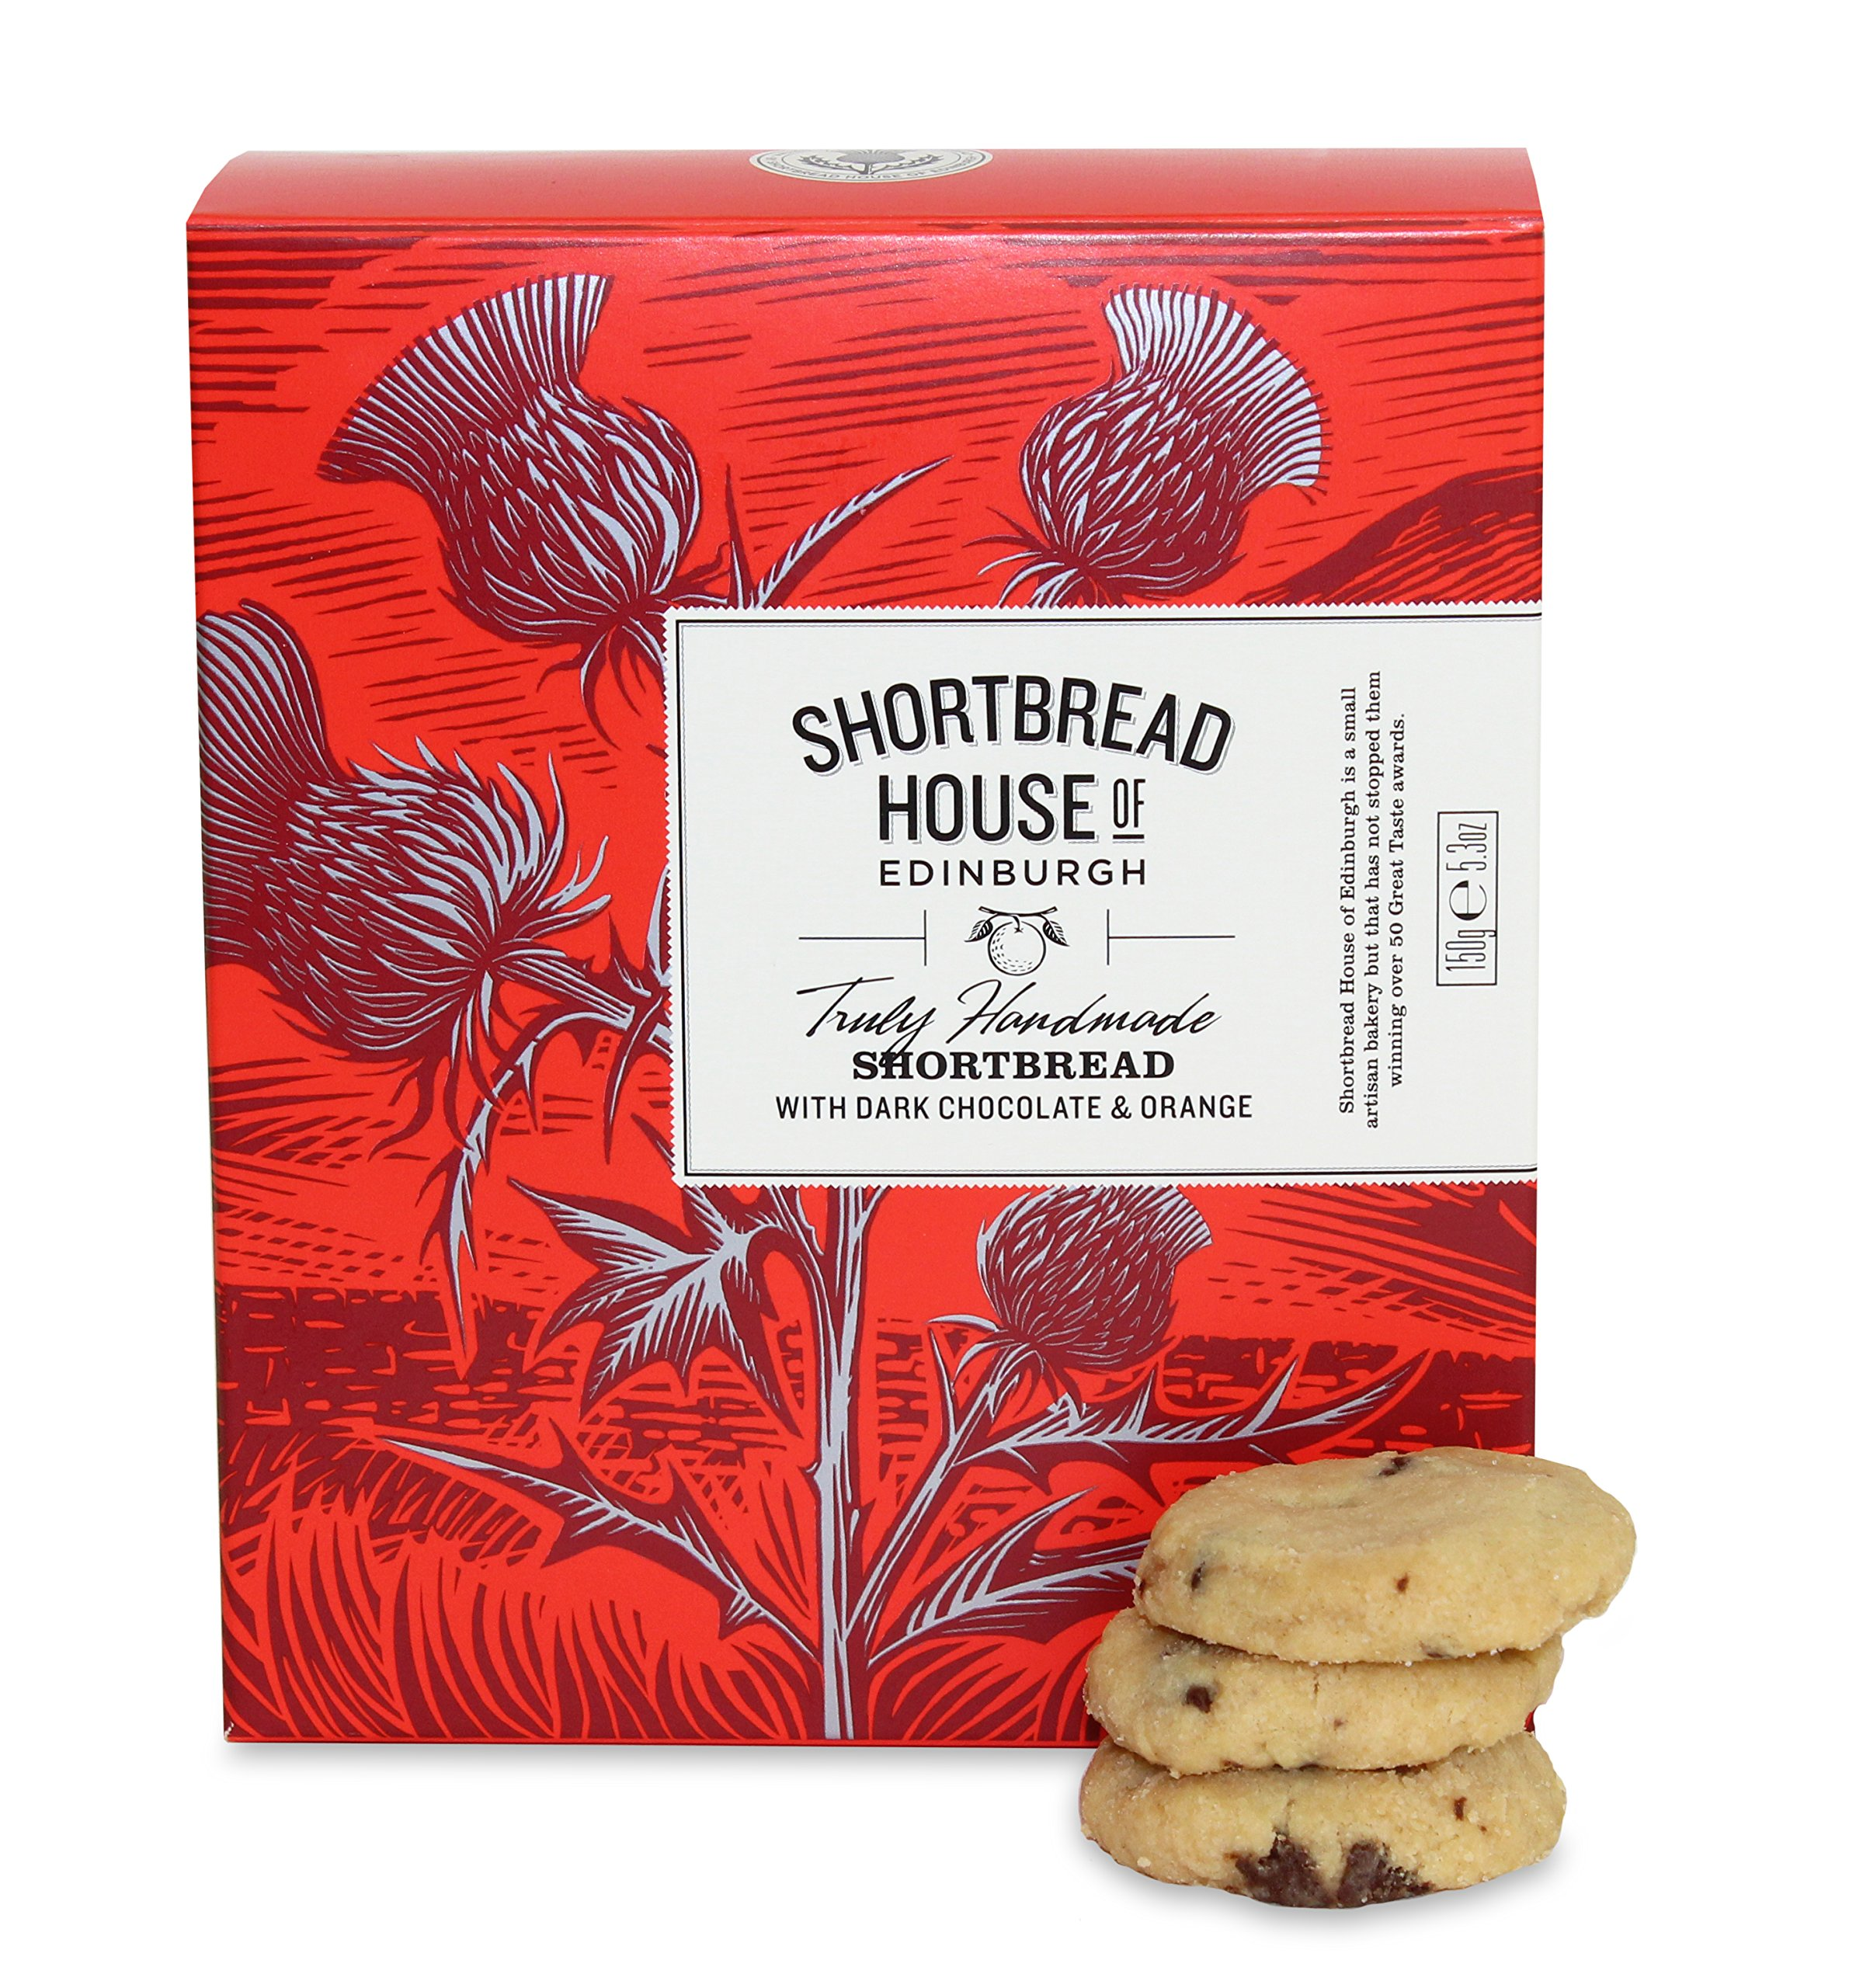 Shortbread House Dark Chocolate & Orange Mini Box 150g by Shortbread House of Edinburgh